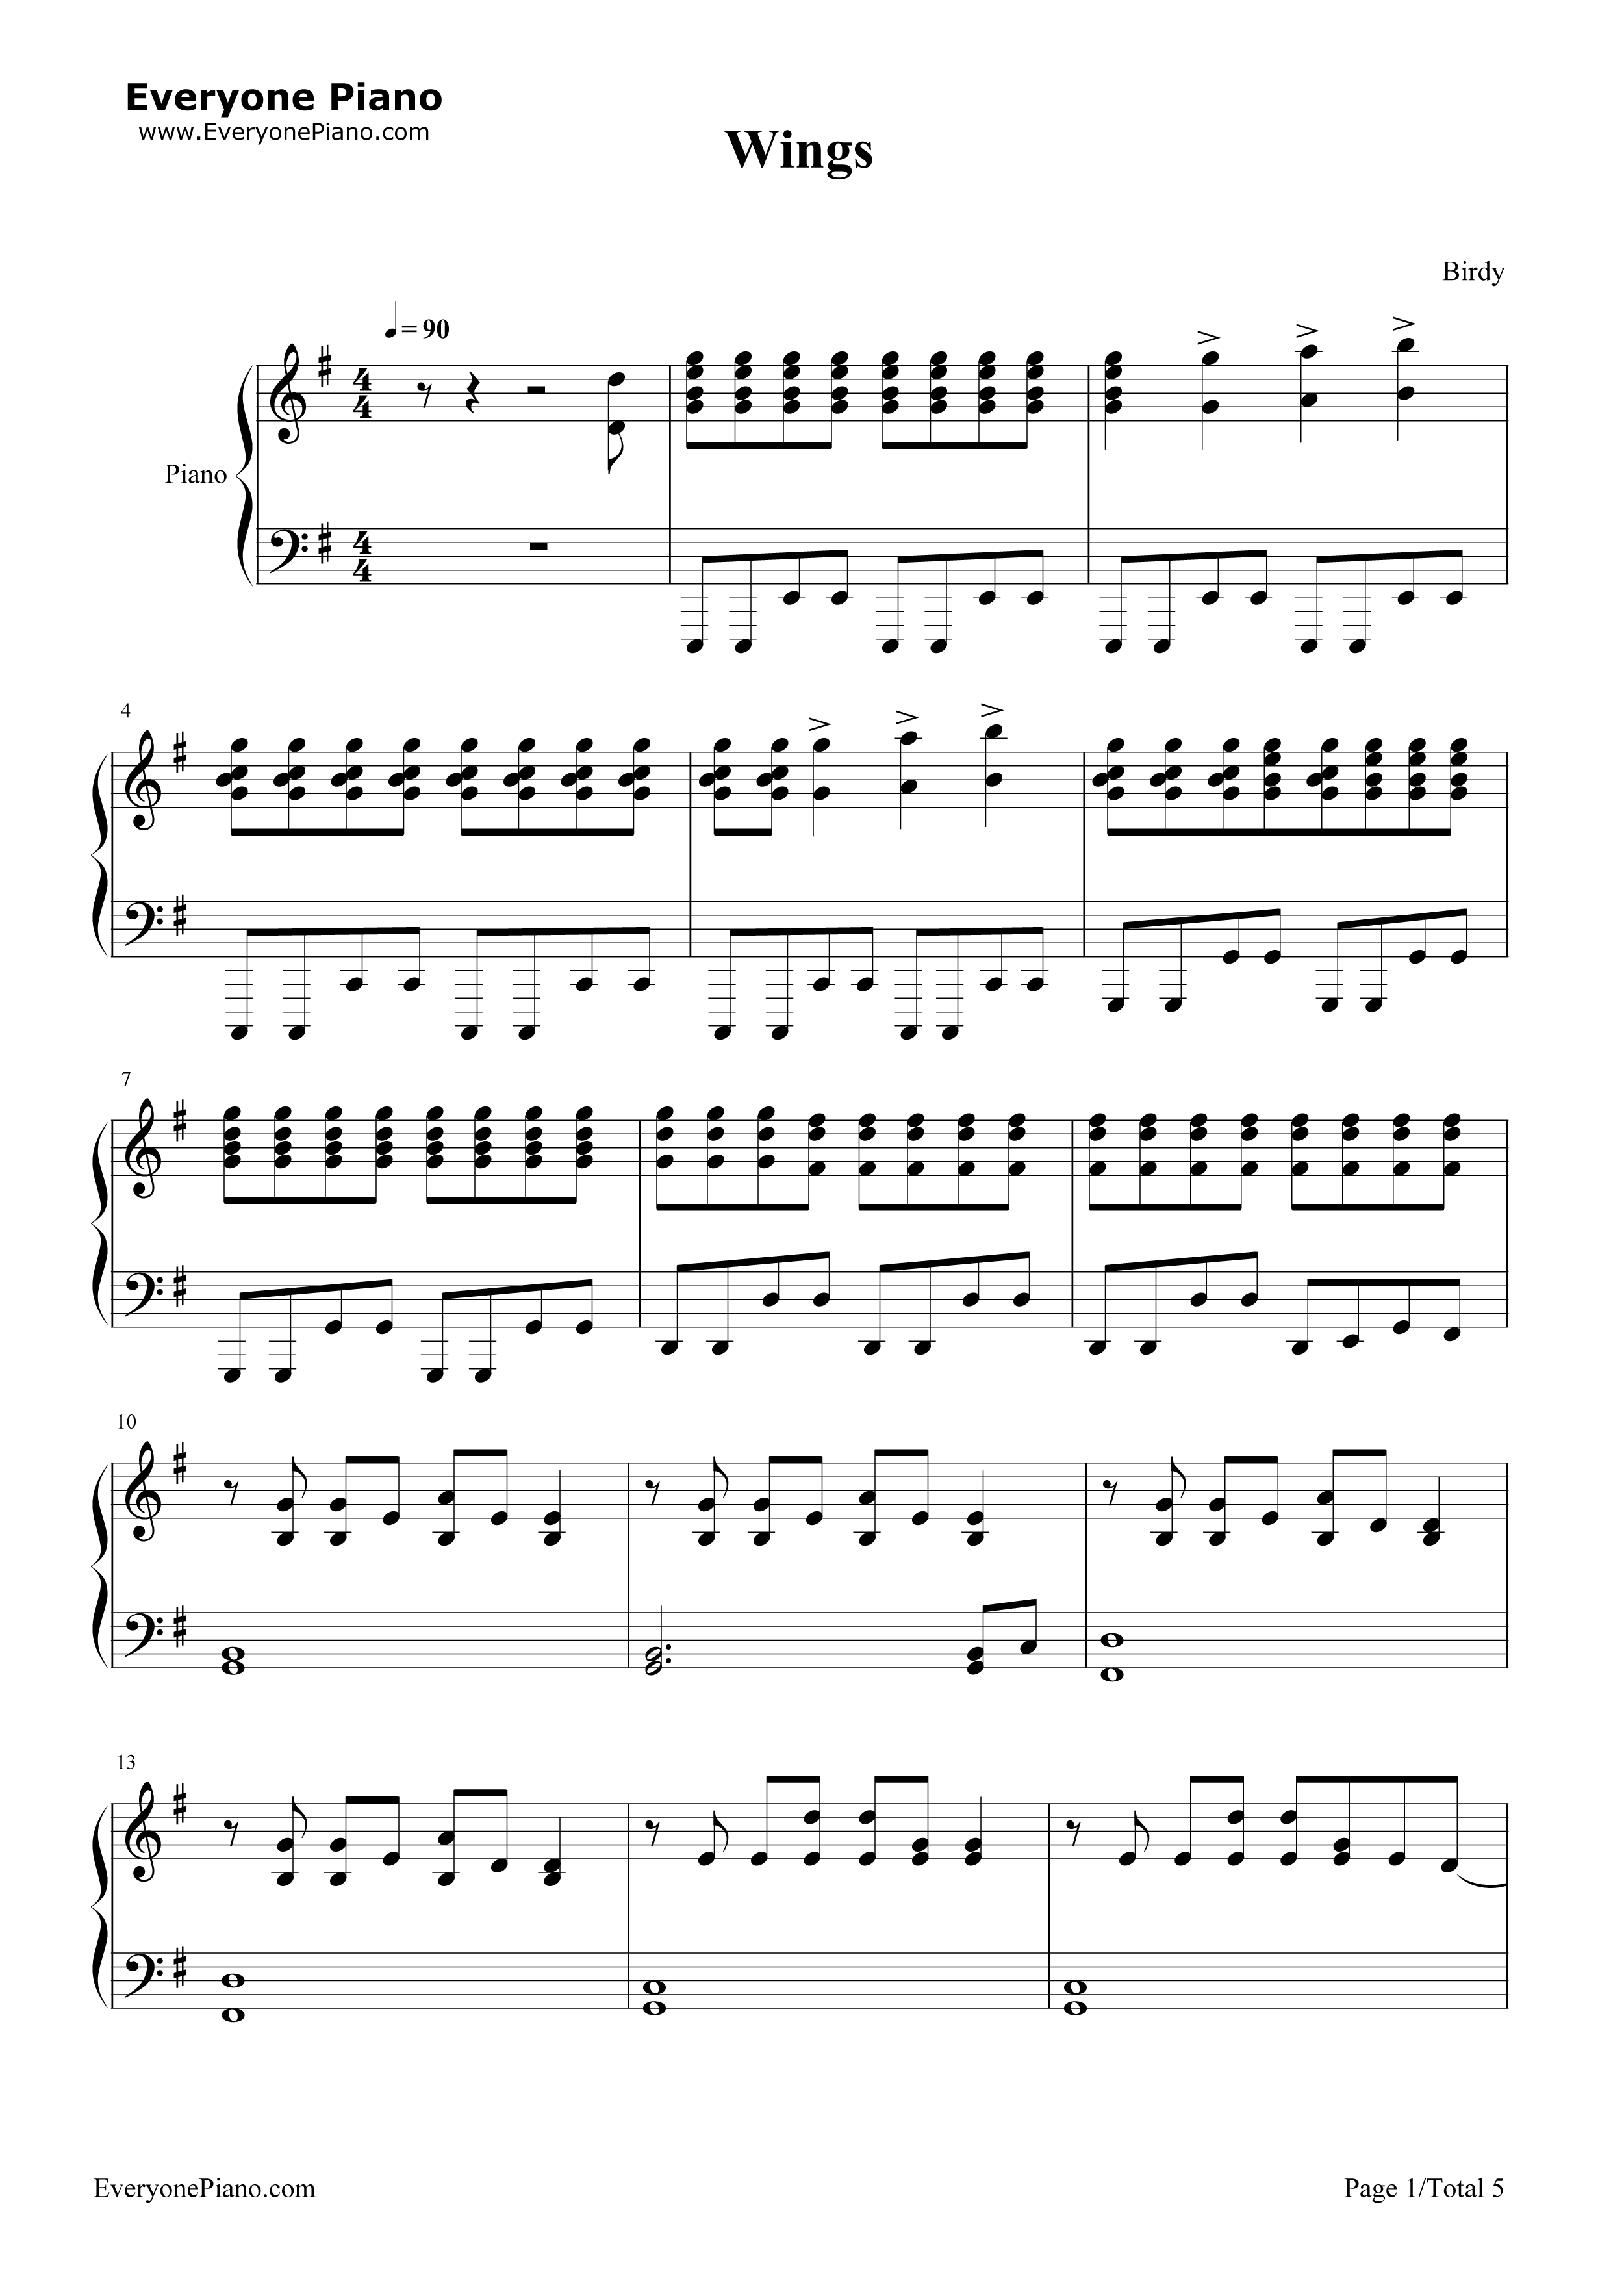 Wings birdy stave preview 1 free piano sheet music piano chords listen now print sheet wings birdy stave preview 1 hexwebz Gallery